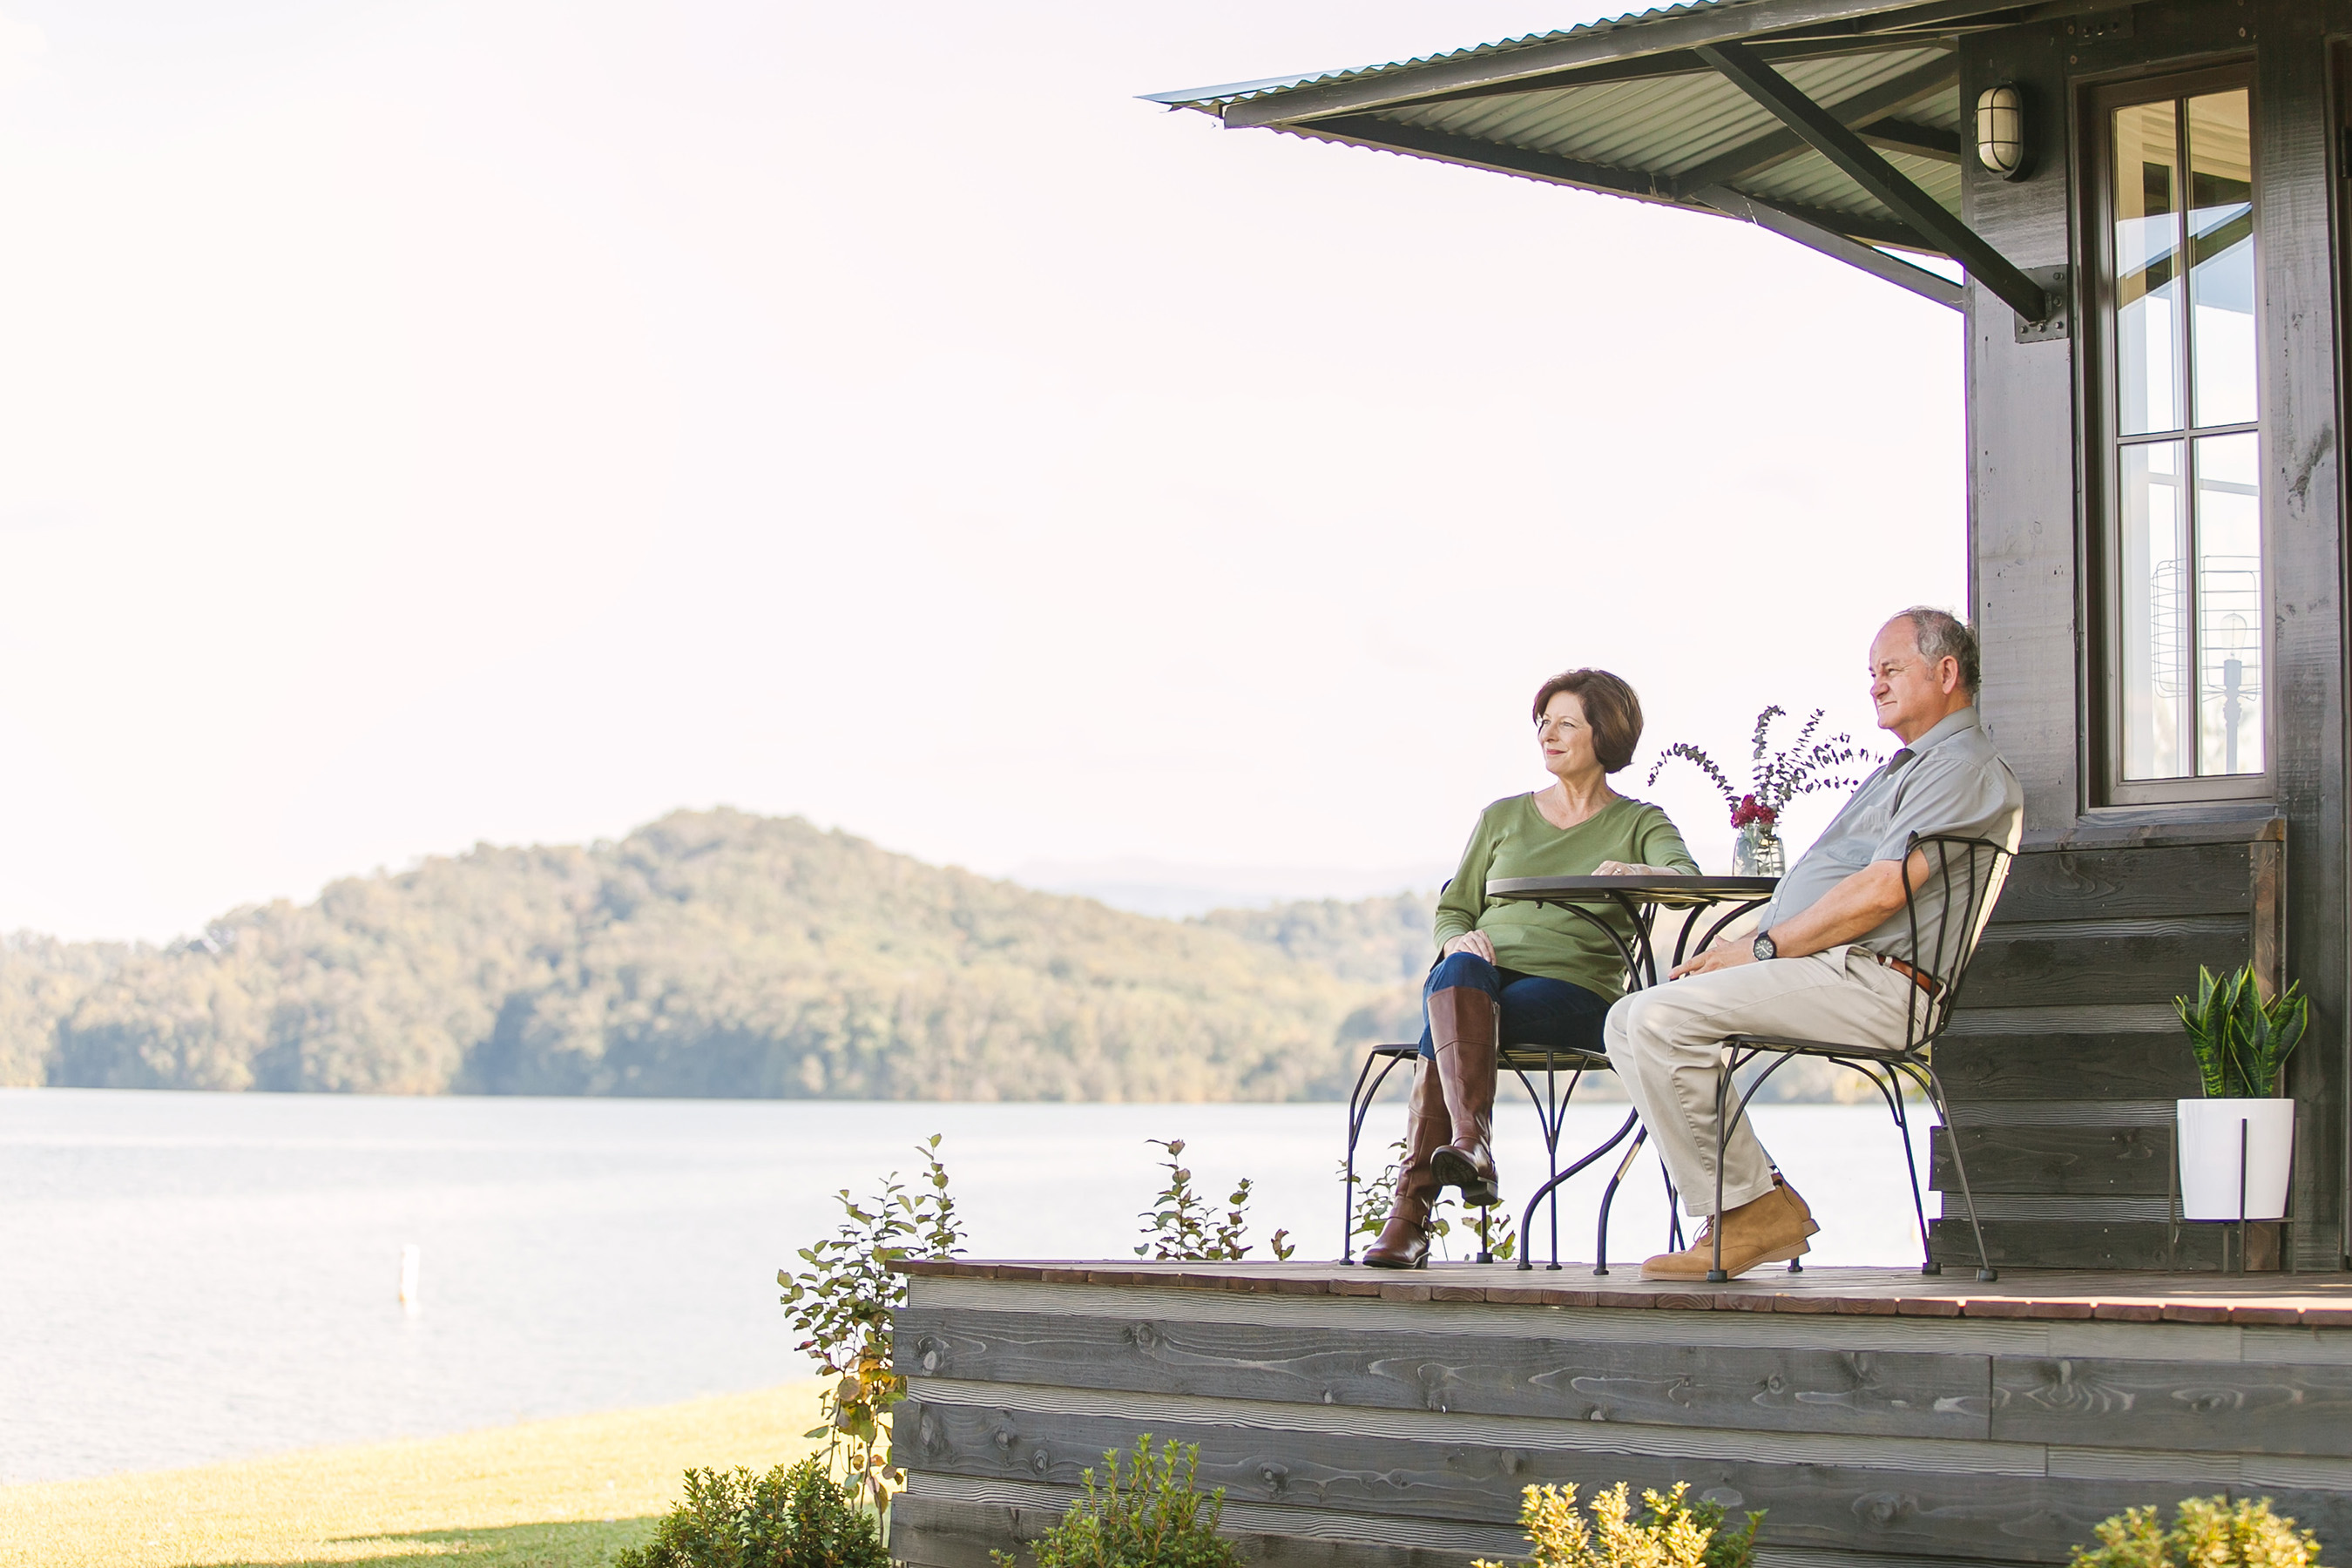 The Saltbox provides outdoor living spaces that can be enjoyed during any season.